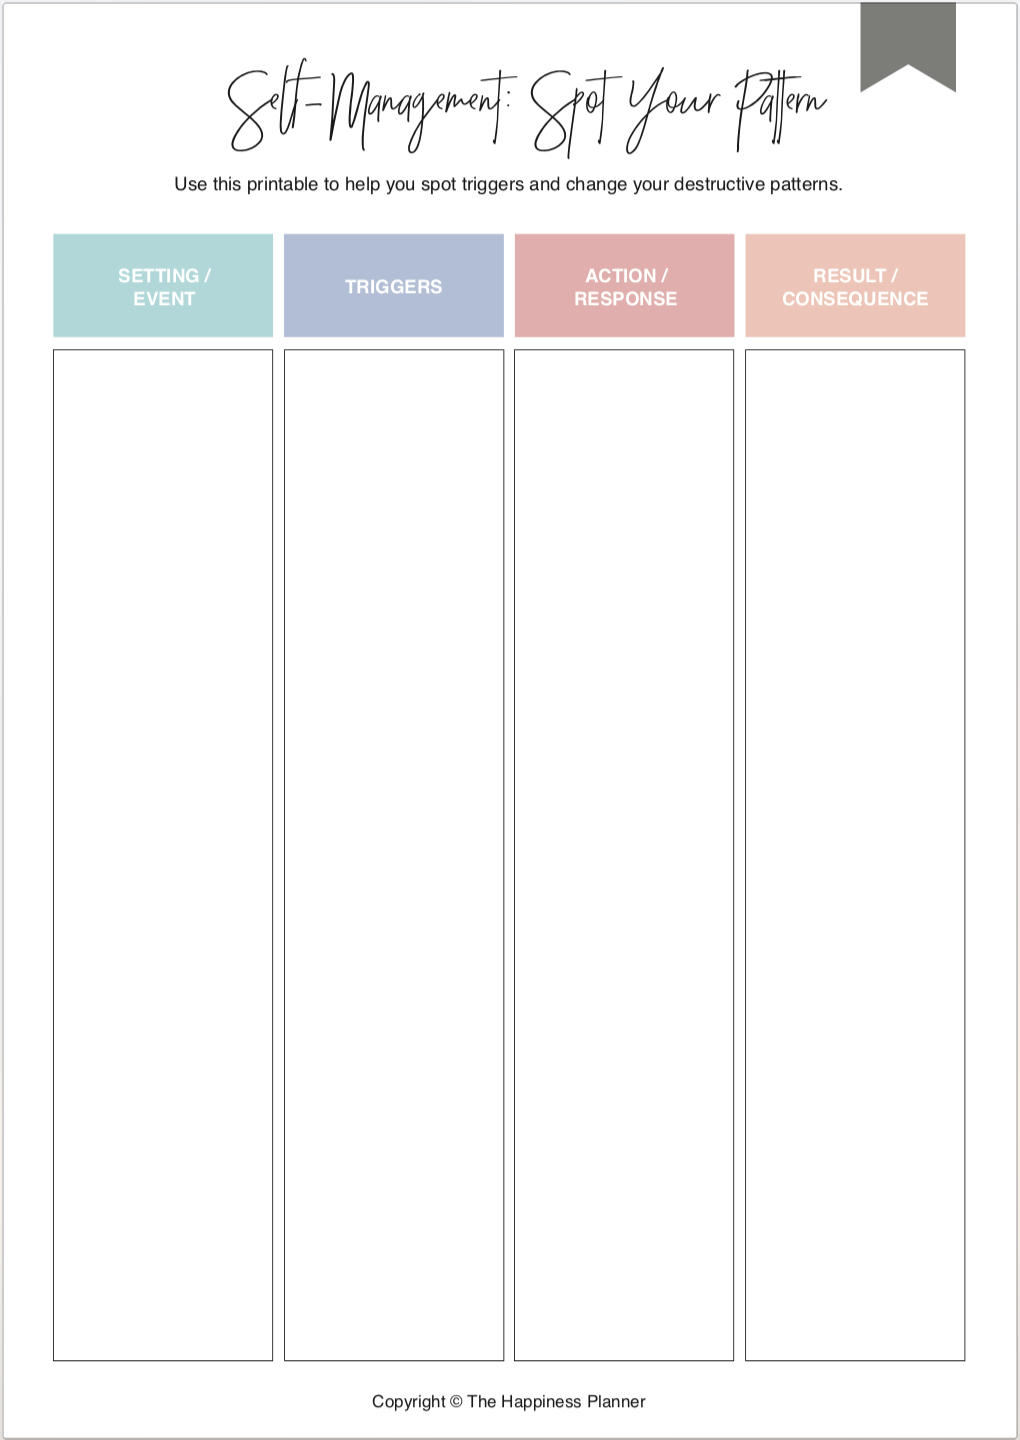 Printables Habits/Patterns [1]   Therapy worksheets ...